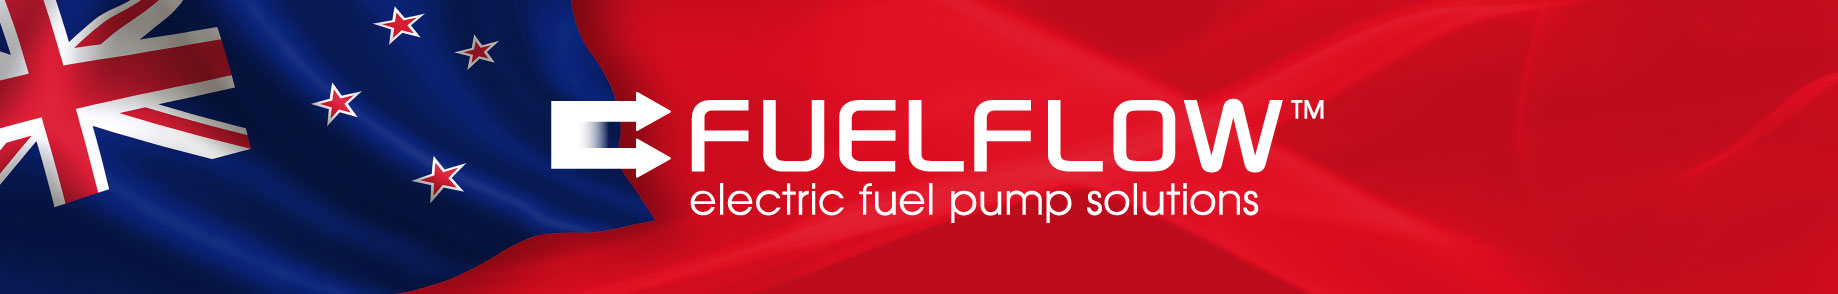 Fuelflow electric fuel pump Banner